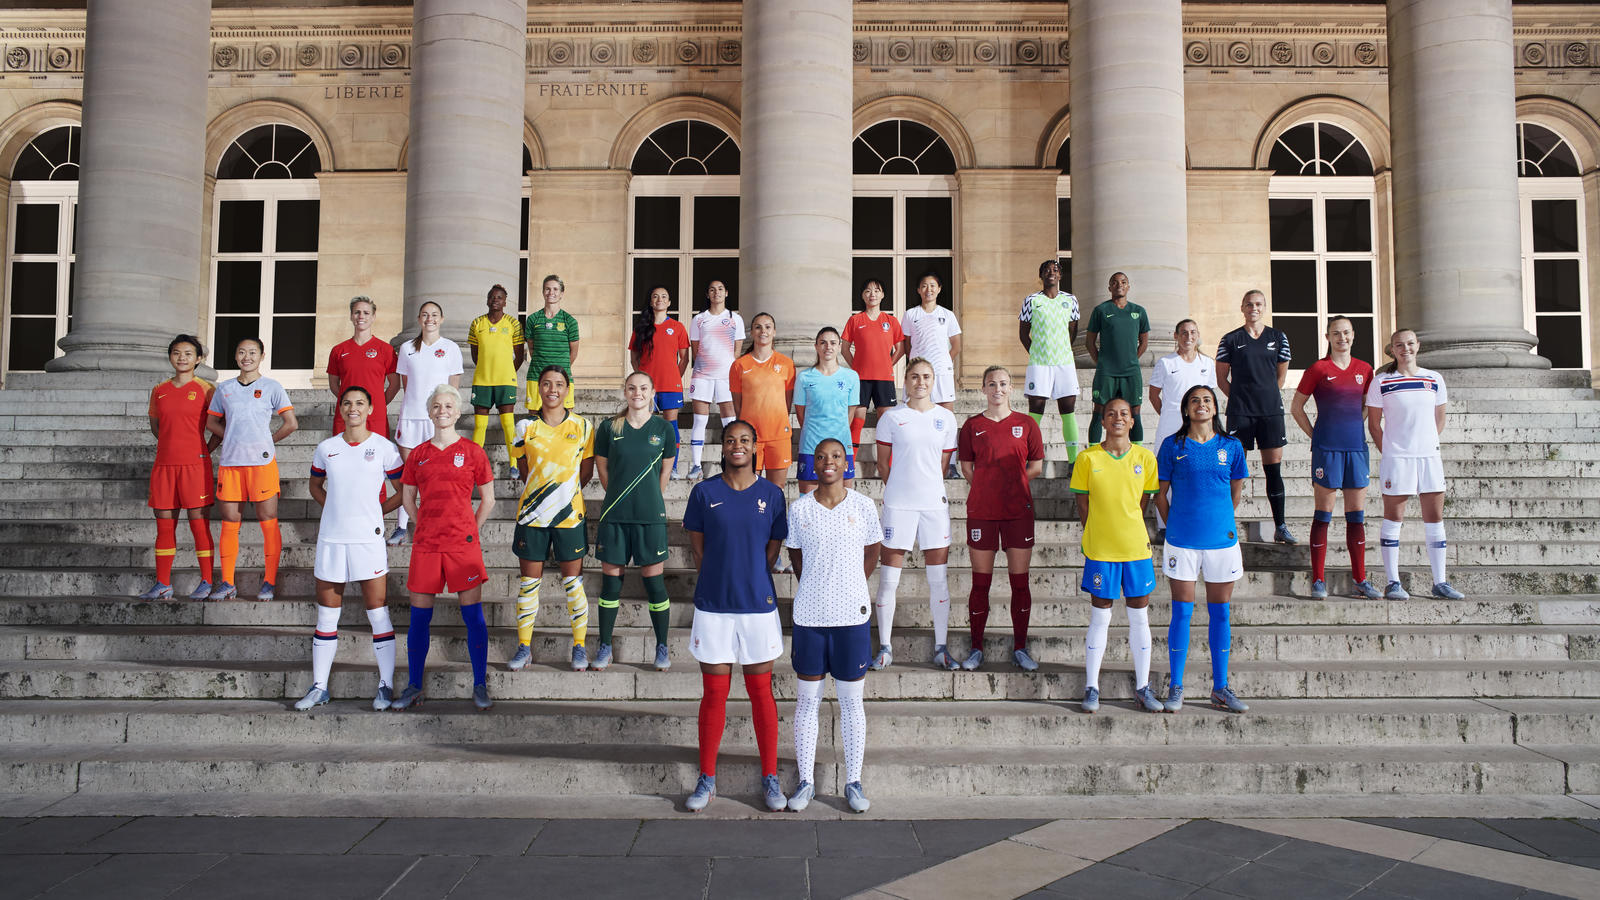 The kits on show at the launch event in Paris